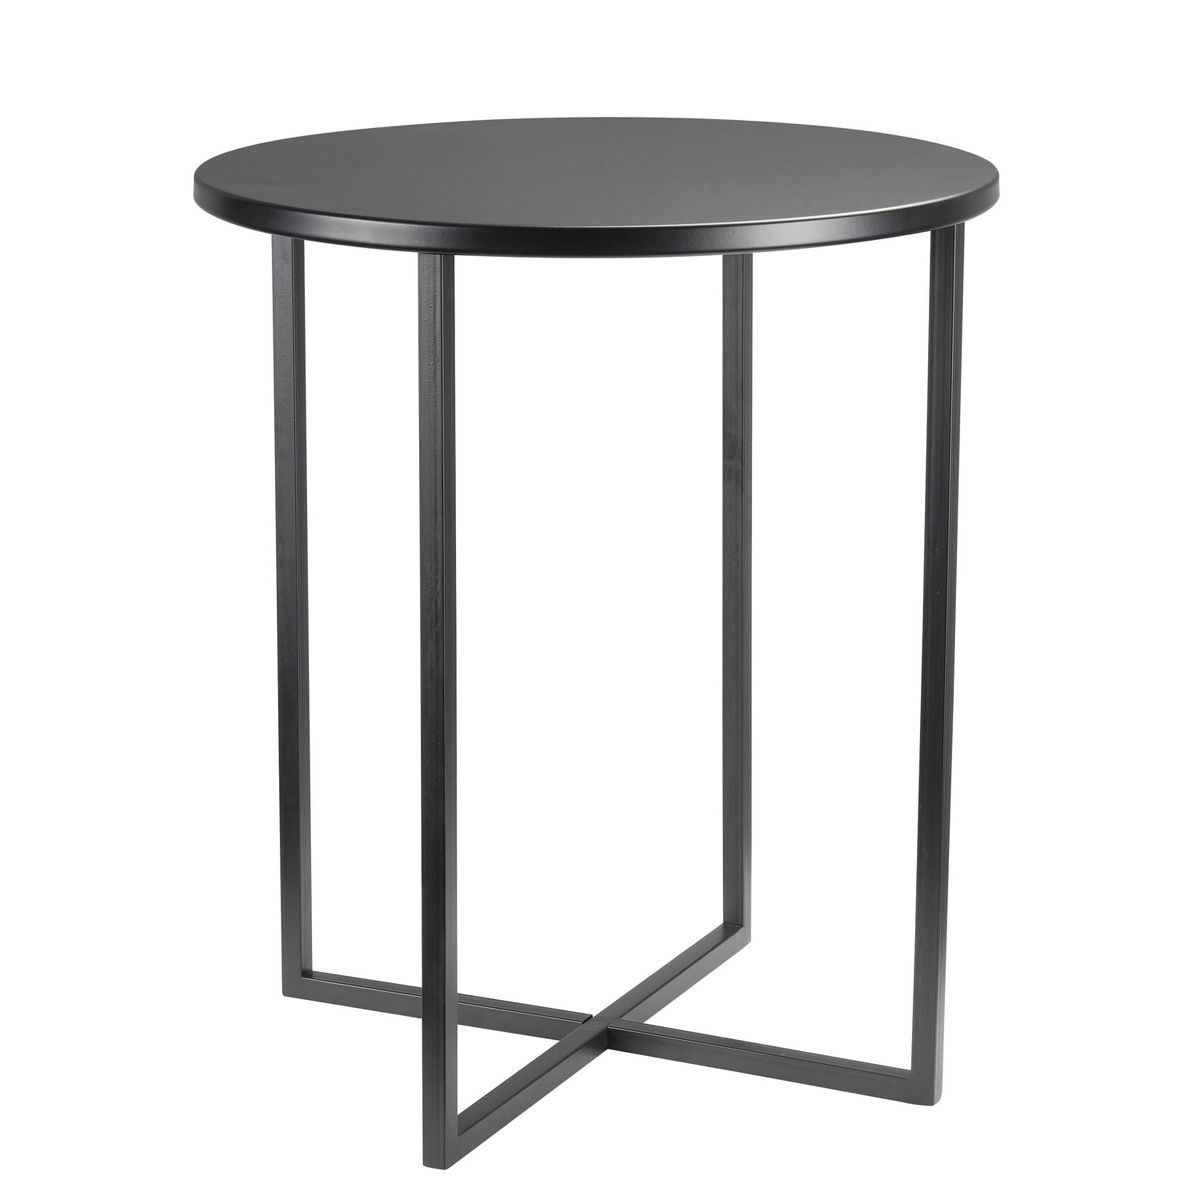 kenroy lighting aria accent table oil rubbed bronze ballard designs office corner dining set room ideas teal decor living storage cabinets round for tiffany style lamp shades end